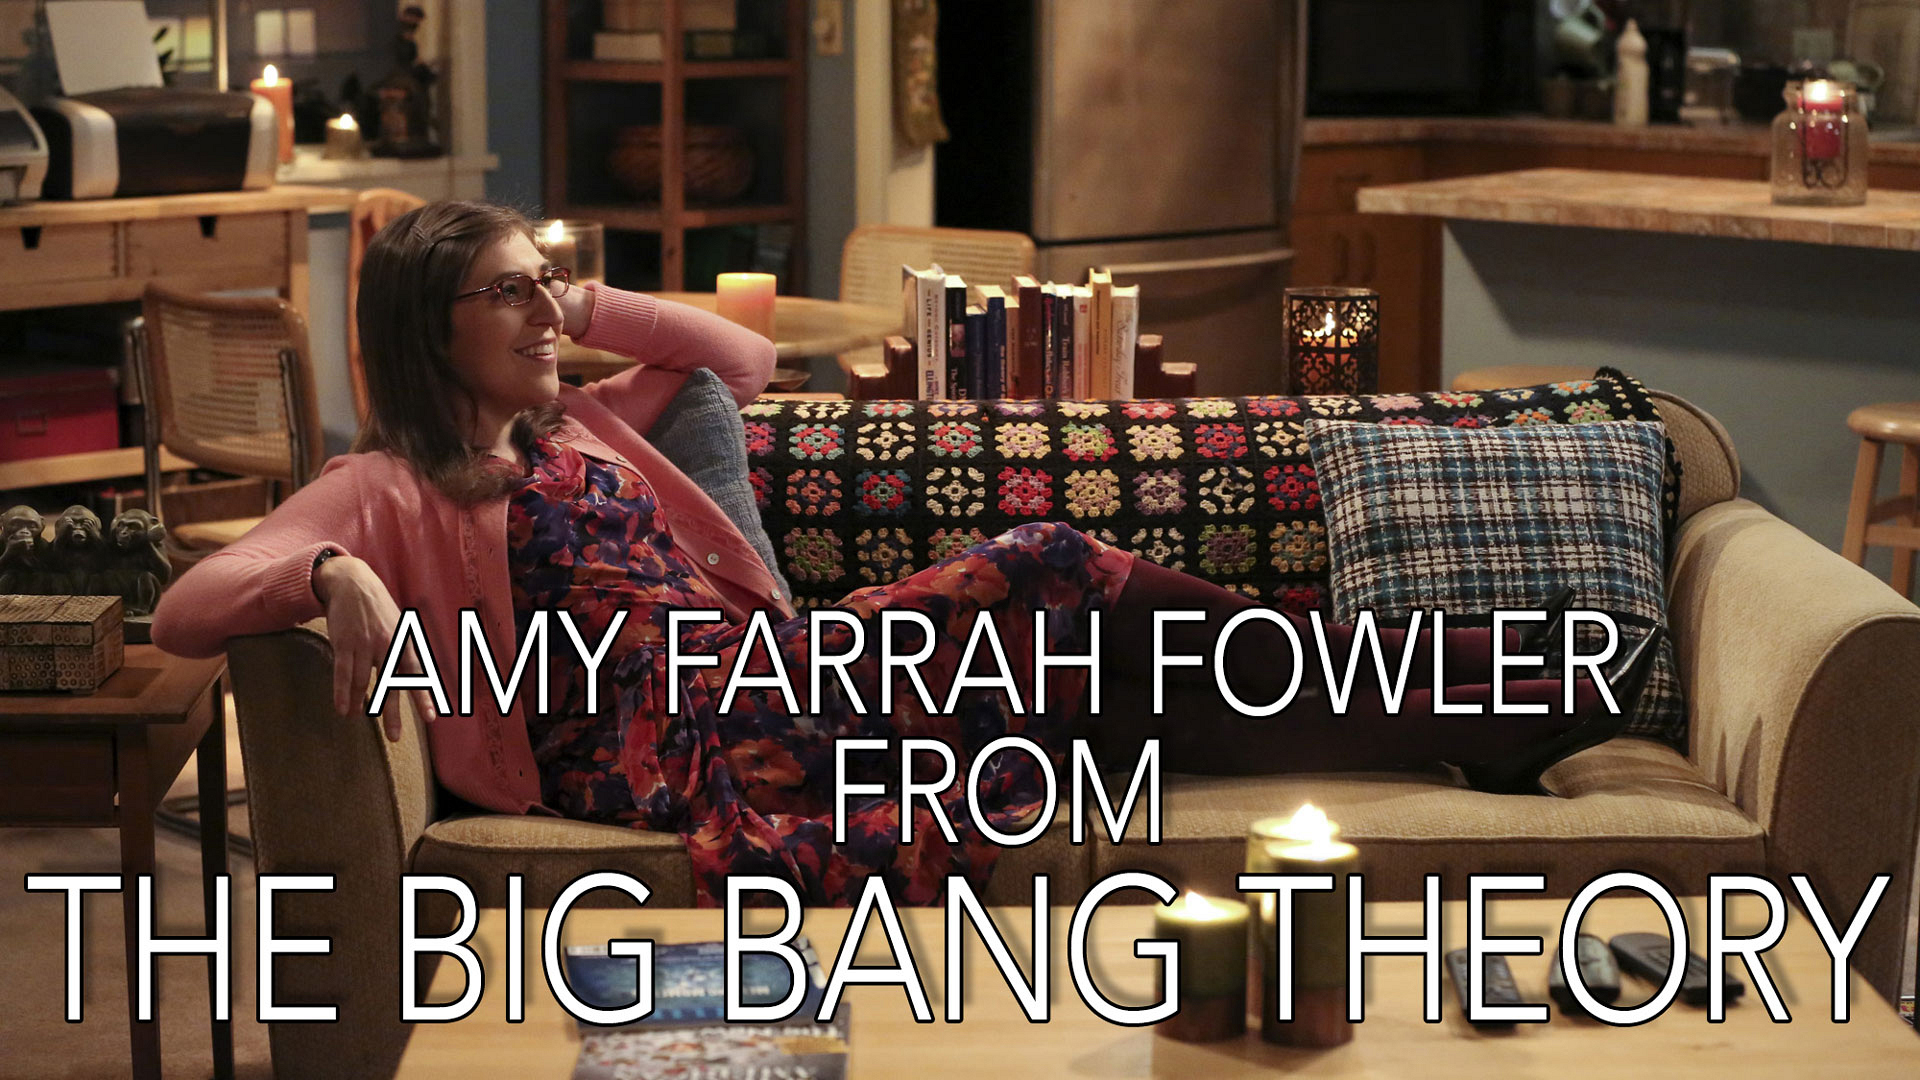 It's a line said by Amy Farrah Fowler on The Big Bang Theory!